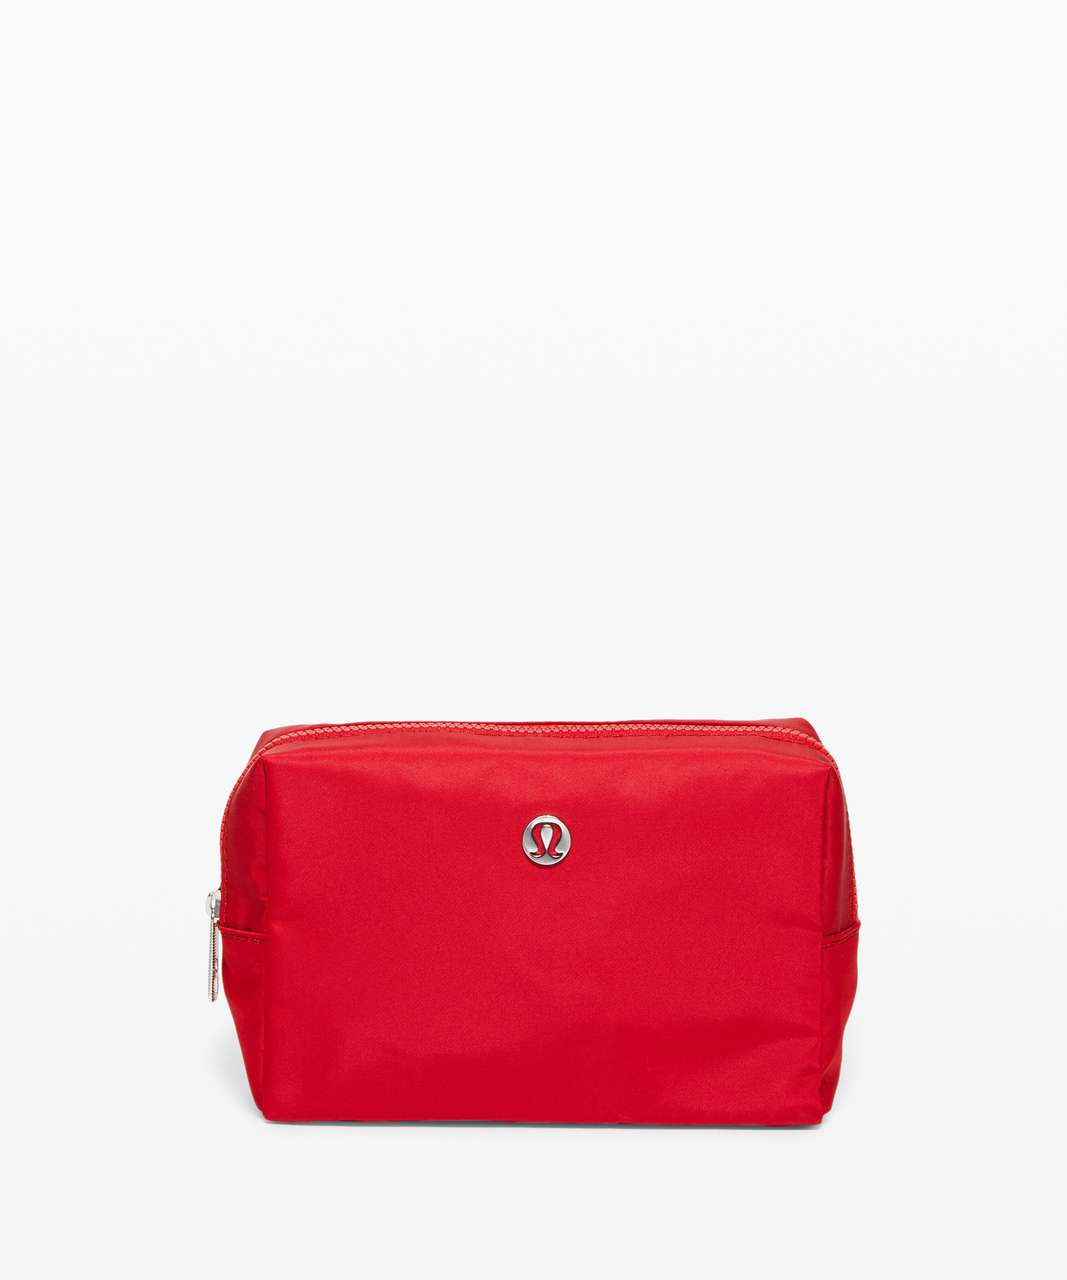 Lululemon All Your Small Things Pouch *Mini 2L - Dark Red